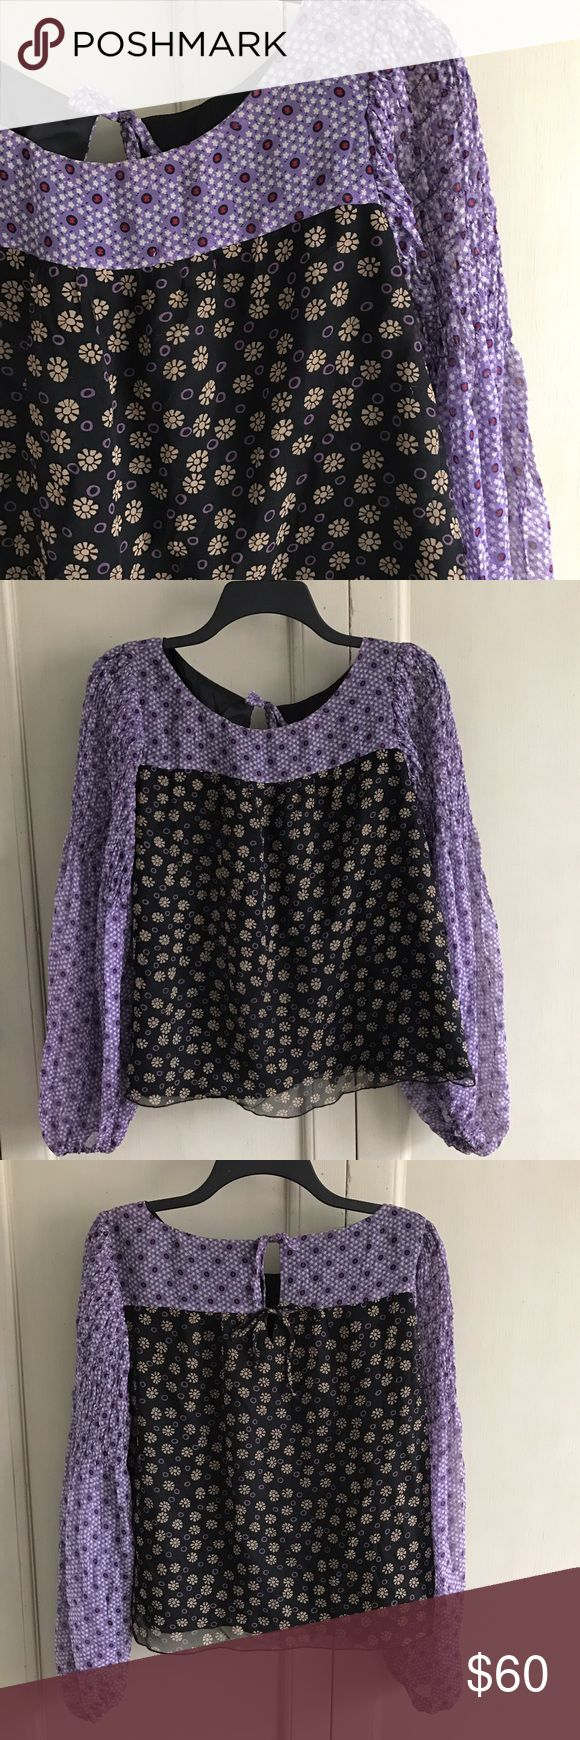 Anna Sui Silk Blouse Top Floral Boho Peasant Slv This Anna Sui top is in excellent condition with no flaws. It's made of 100% silk and has an acetate lining.     Bust: 21.75 inches.    Length: 22.25 inches.     Sleeve: 23.5 inches Anna Sui Tops Blouses